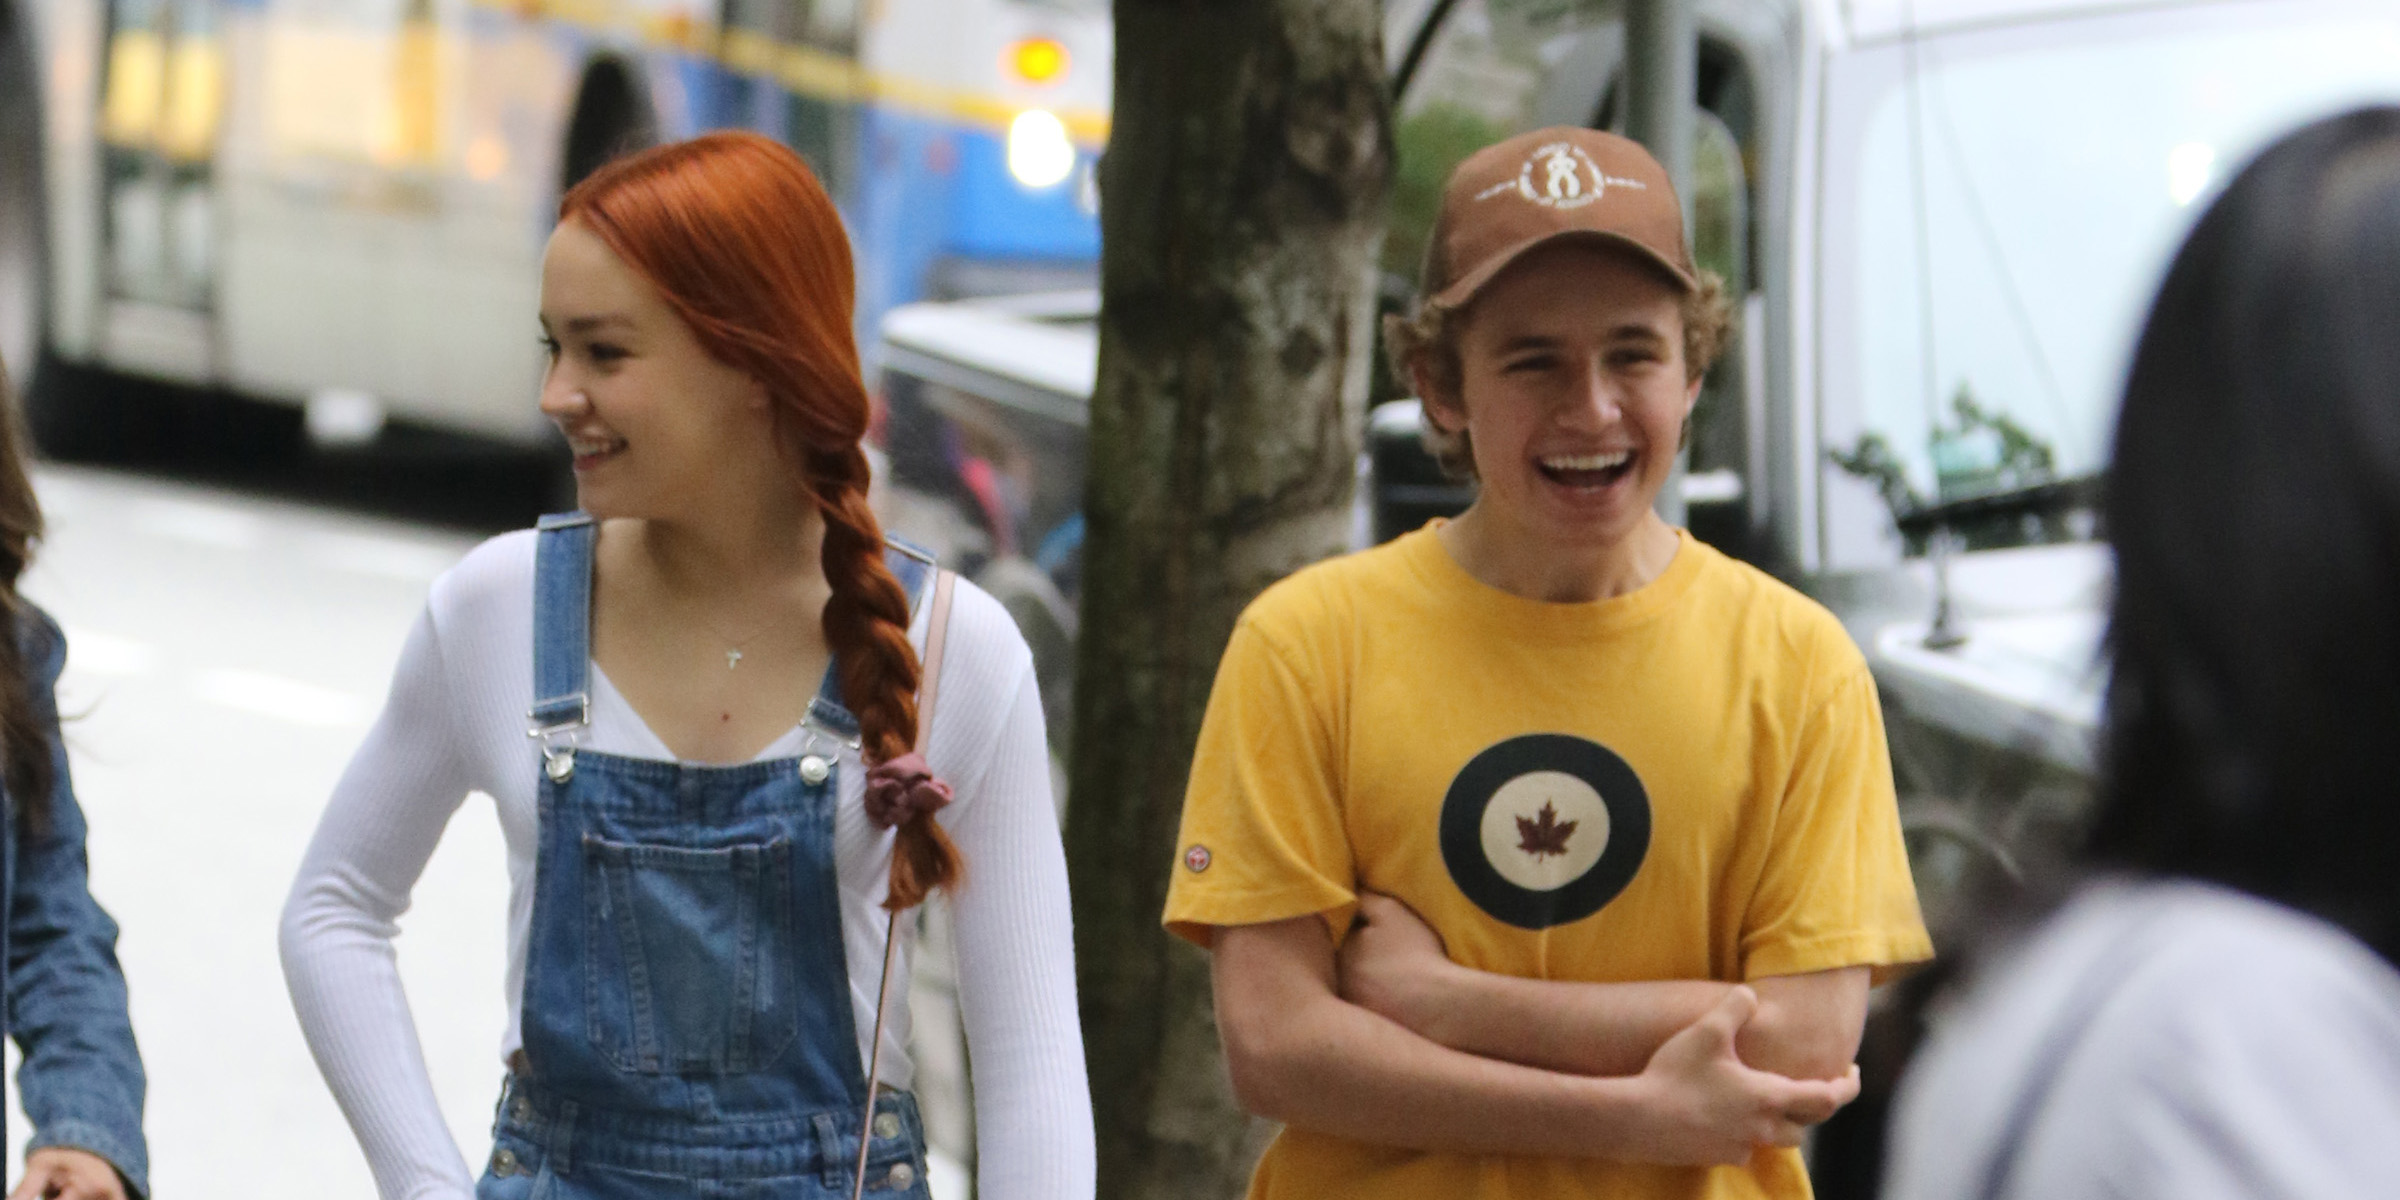 Disney's 'Kim Possible' stars spotted in Vancouver (PHOTOS)